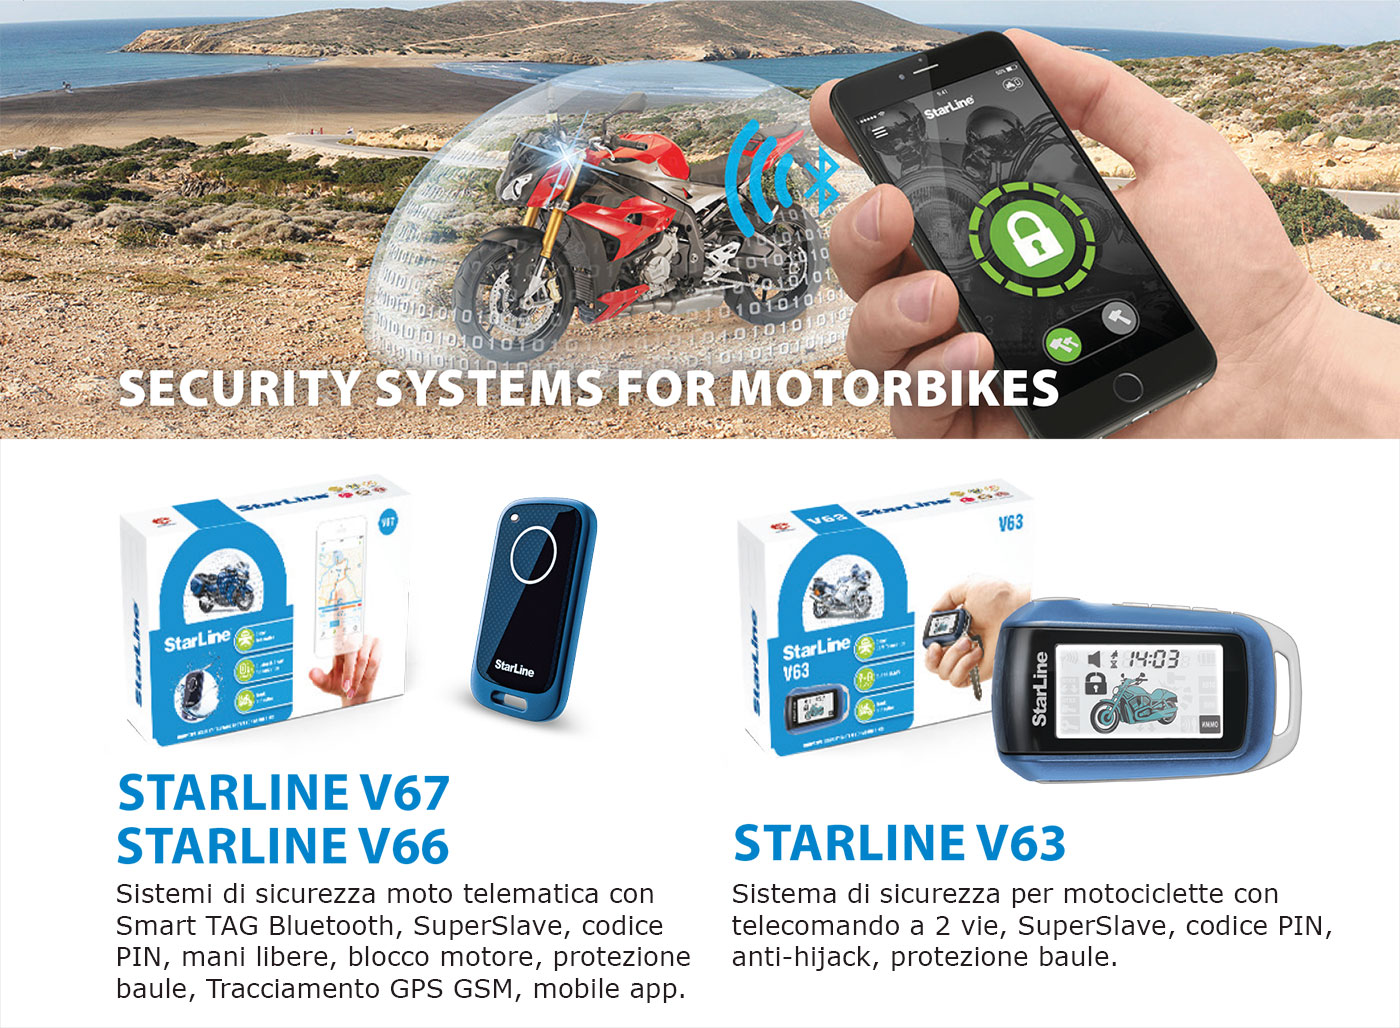 starline-v67-gps-motorbike-security-systems_4.jpg